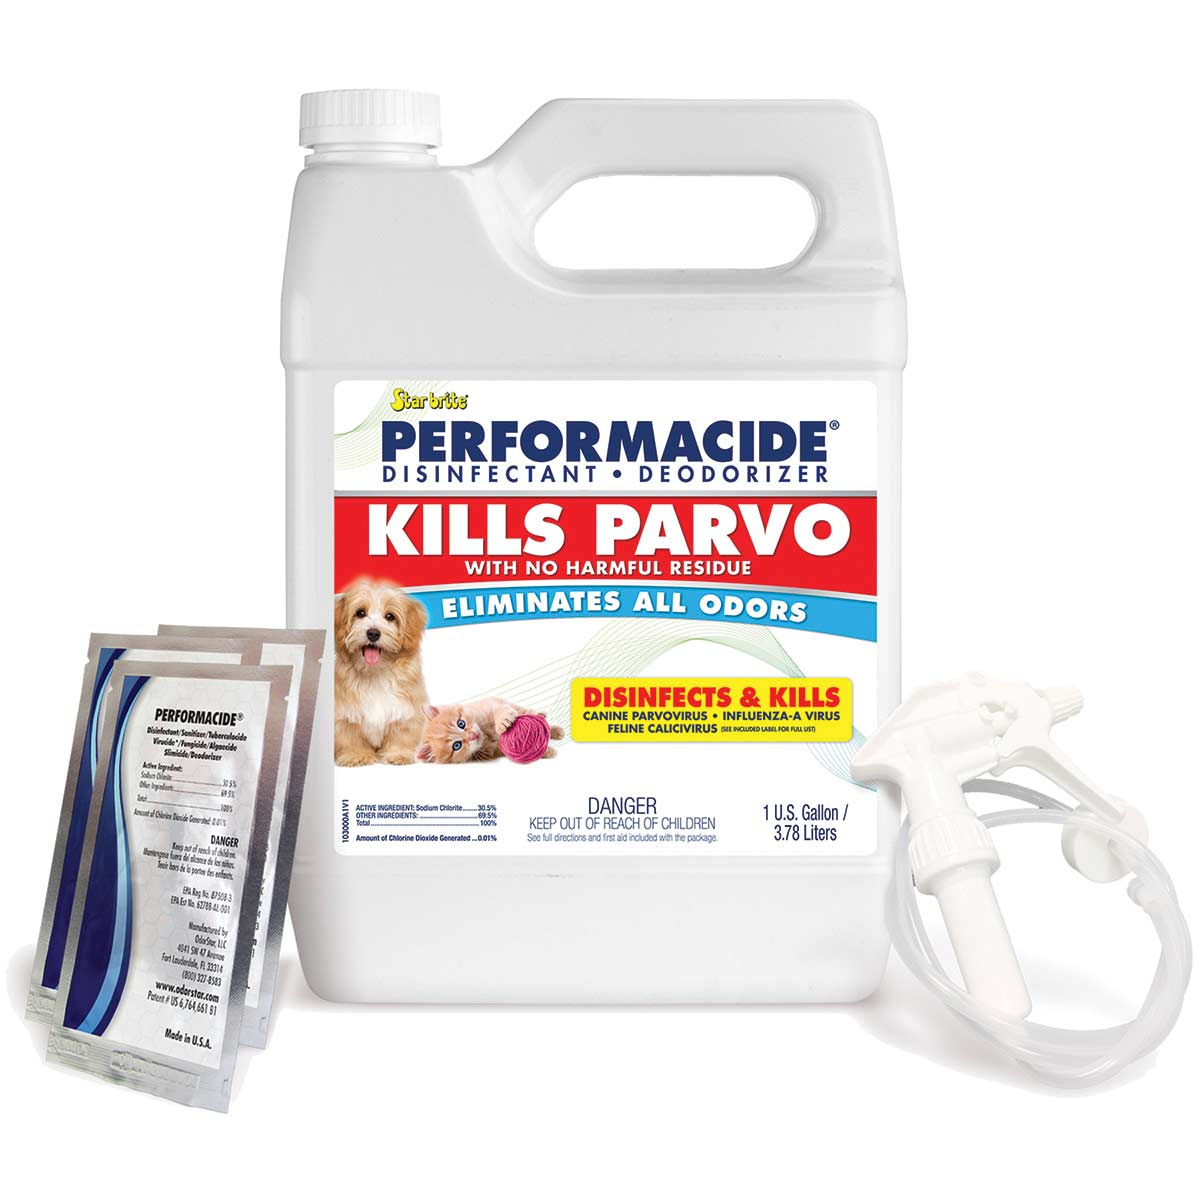 Disinfect, Deodorize and Kill Parvo with Star brite Performacide Gallon Kit 3 Pack